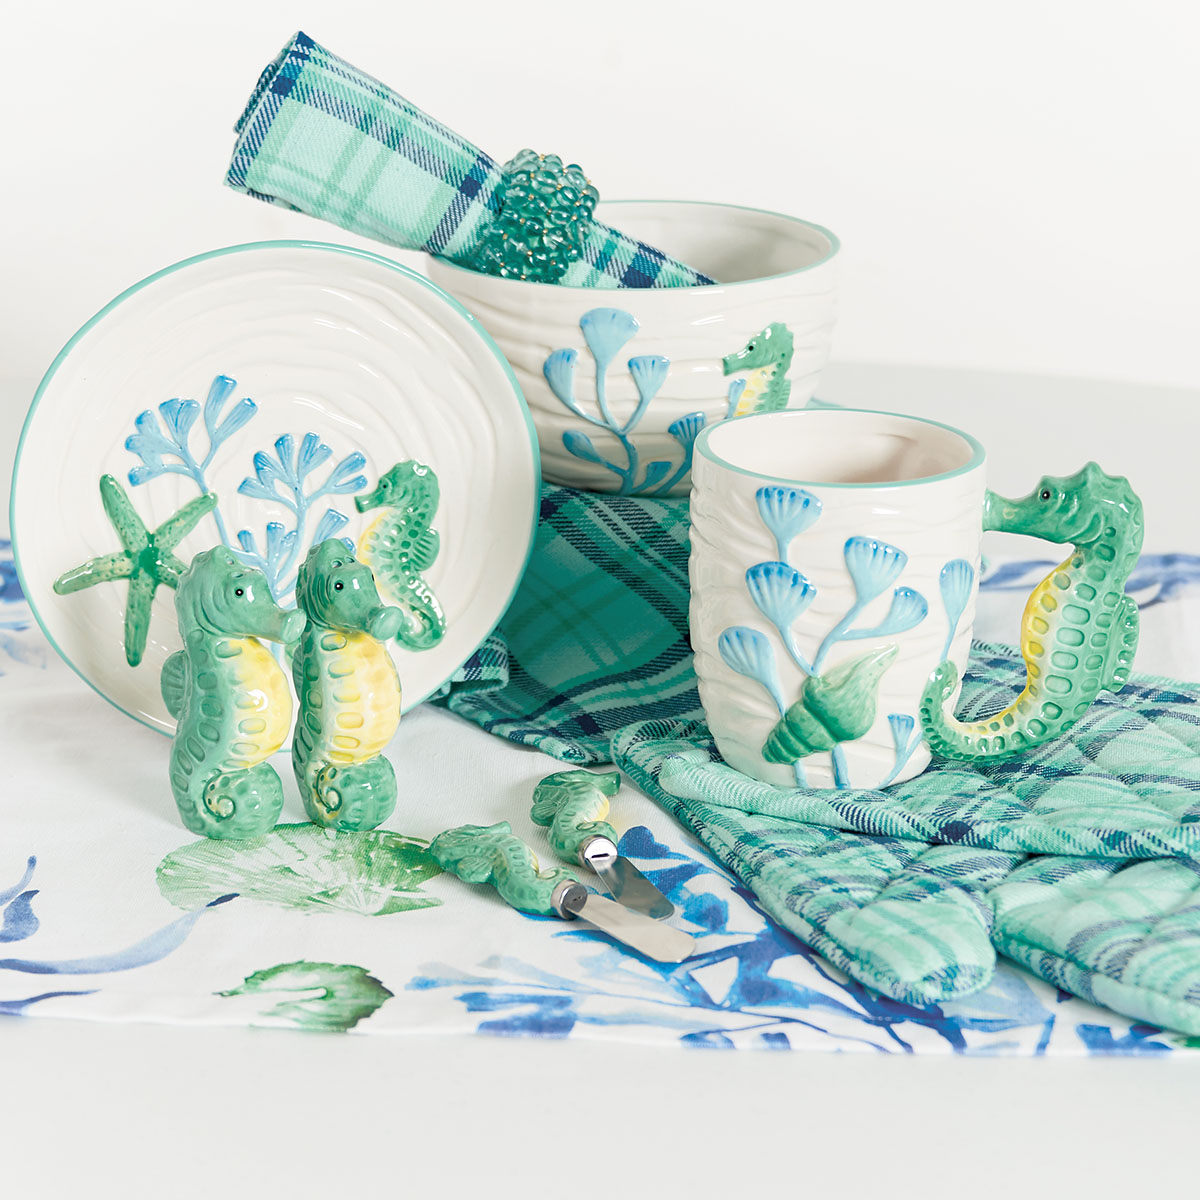 C&F Home_Coastal_Tabletop_Tableware.jpg